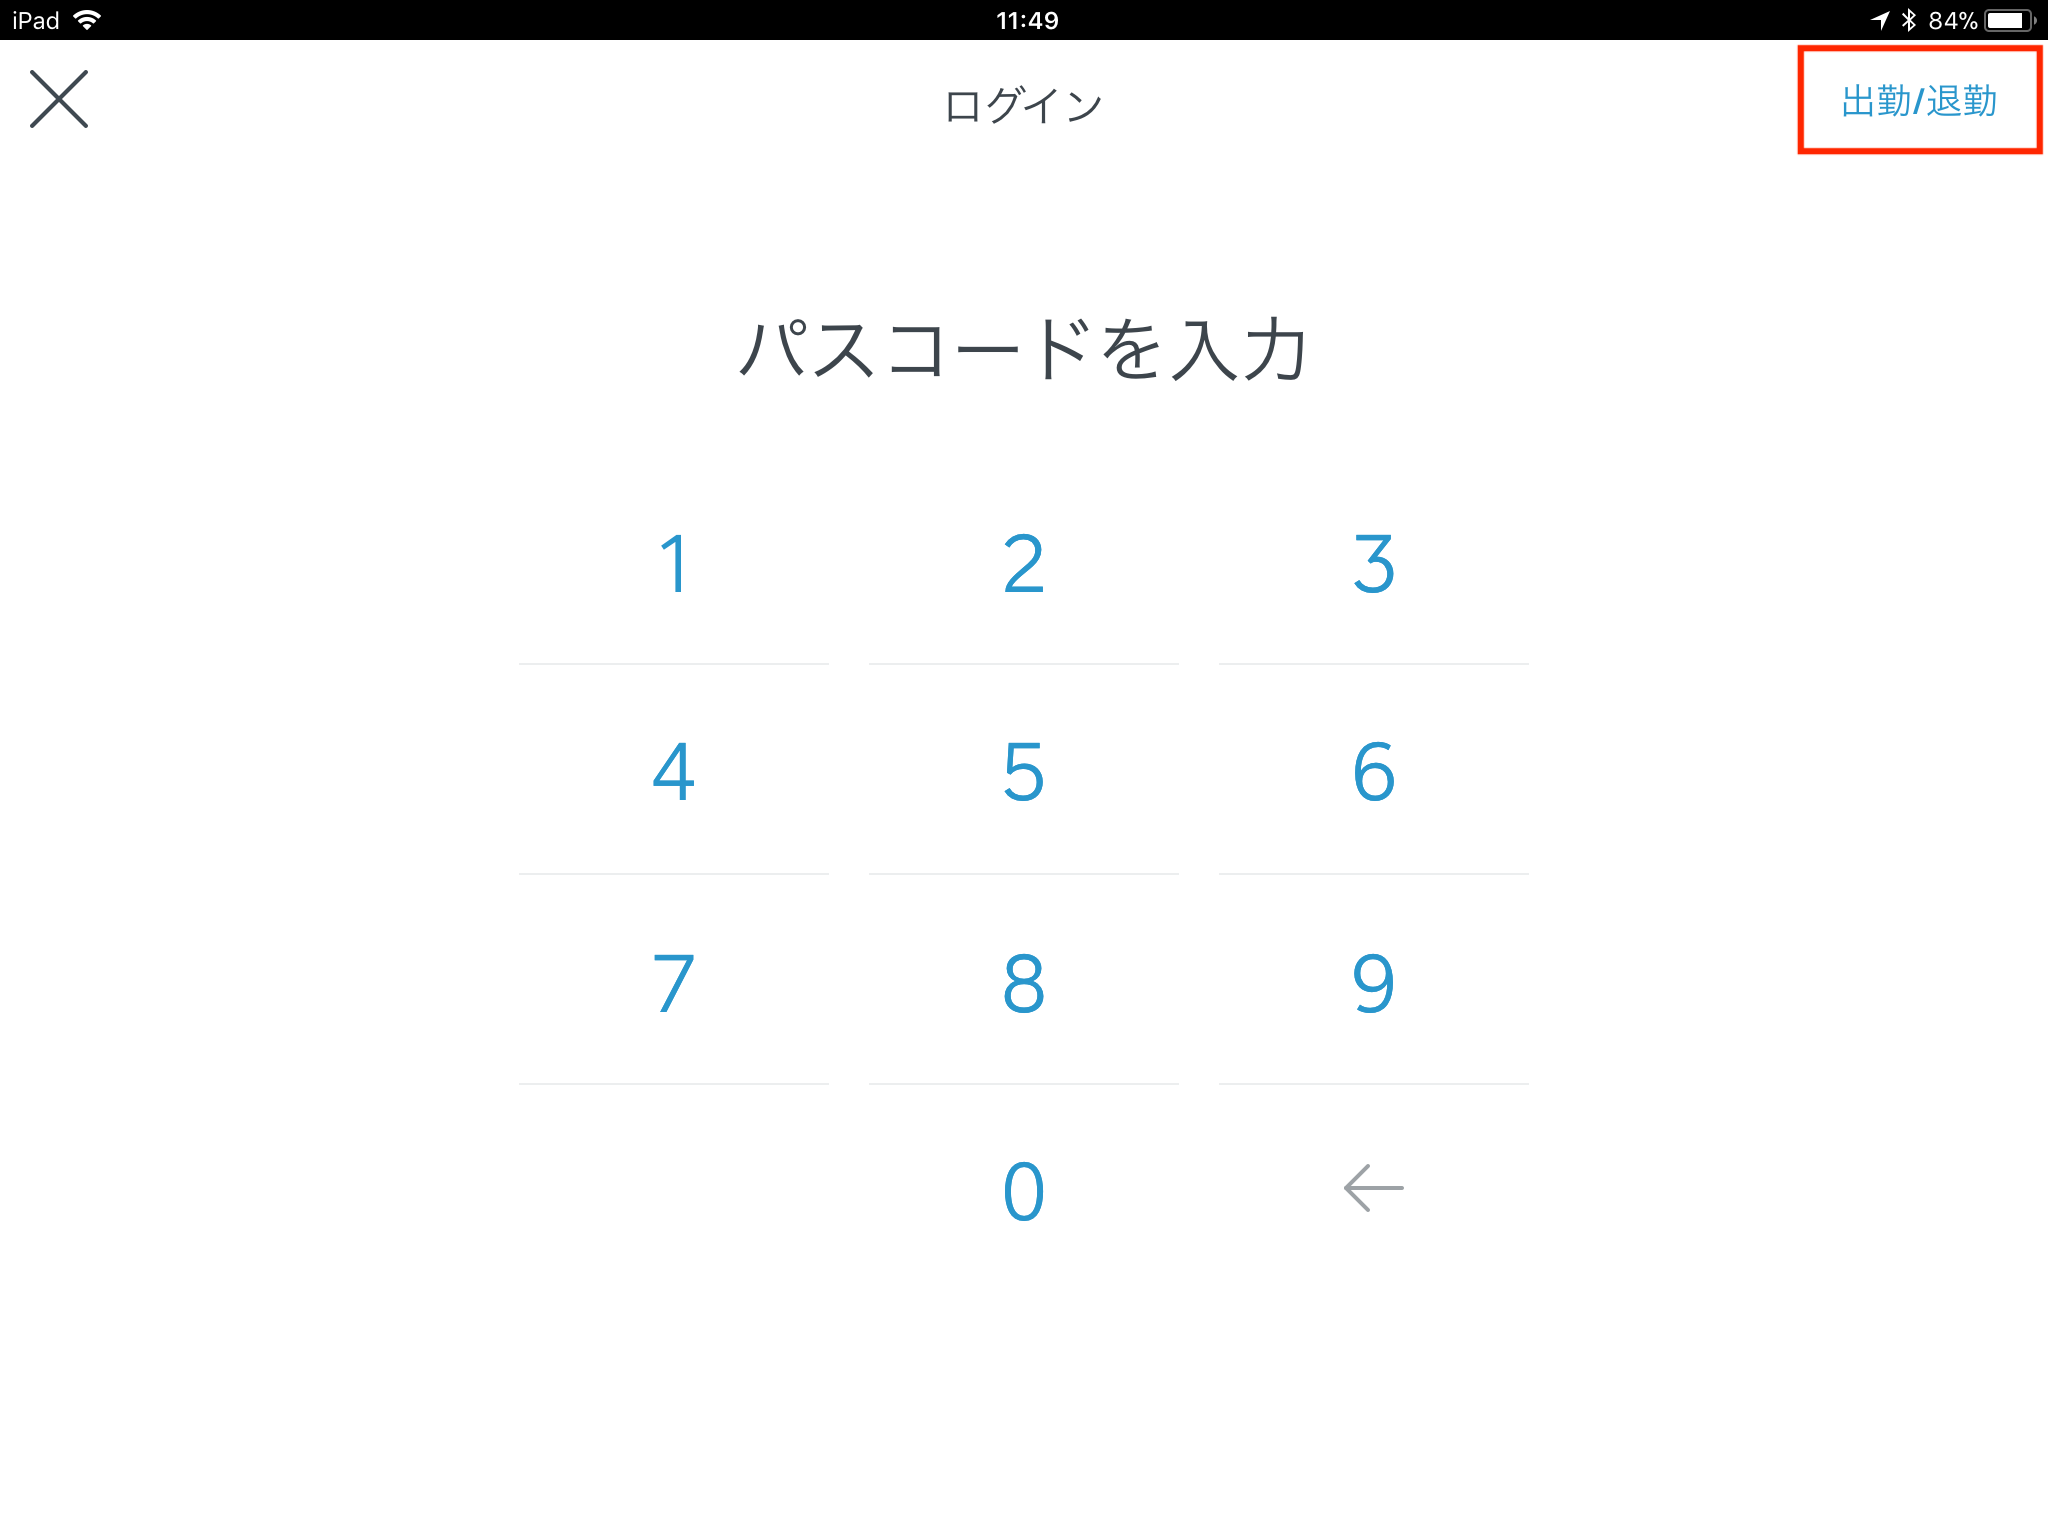 JP Clock In/Out_iPad